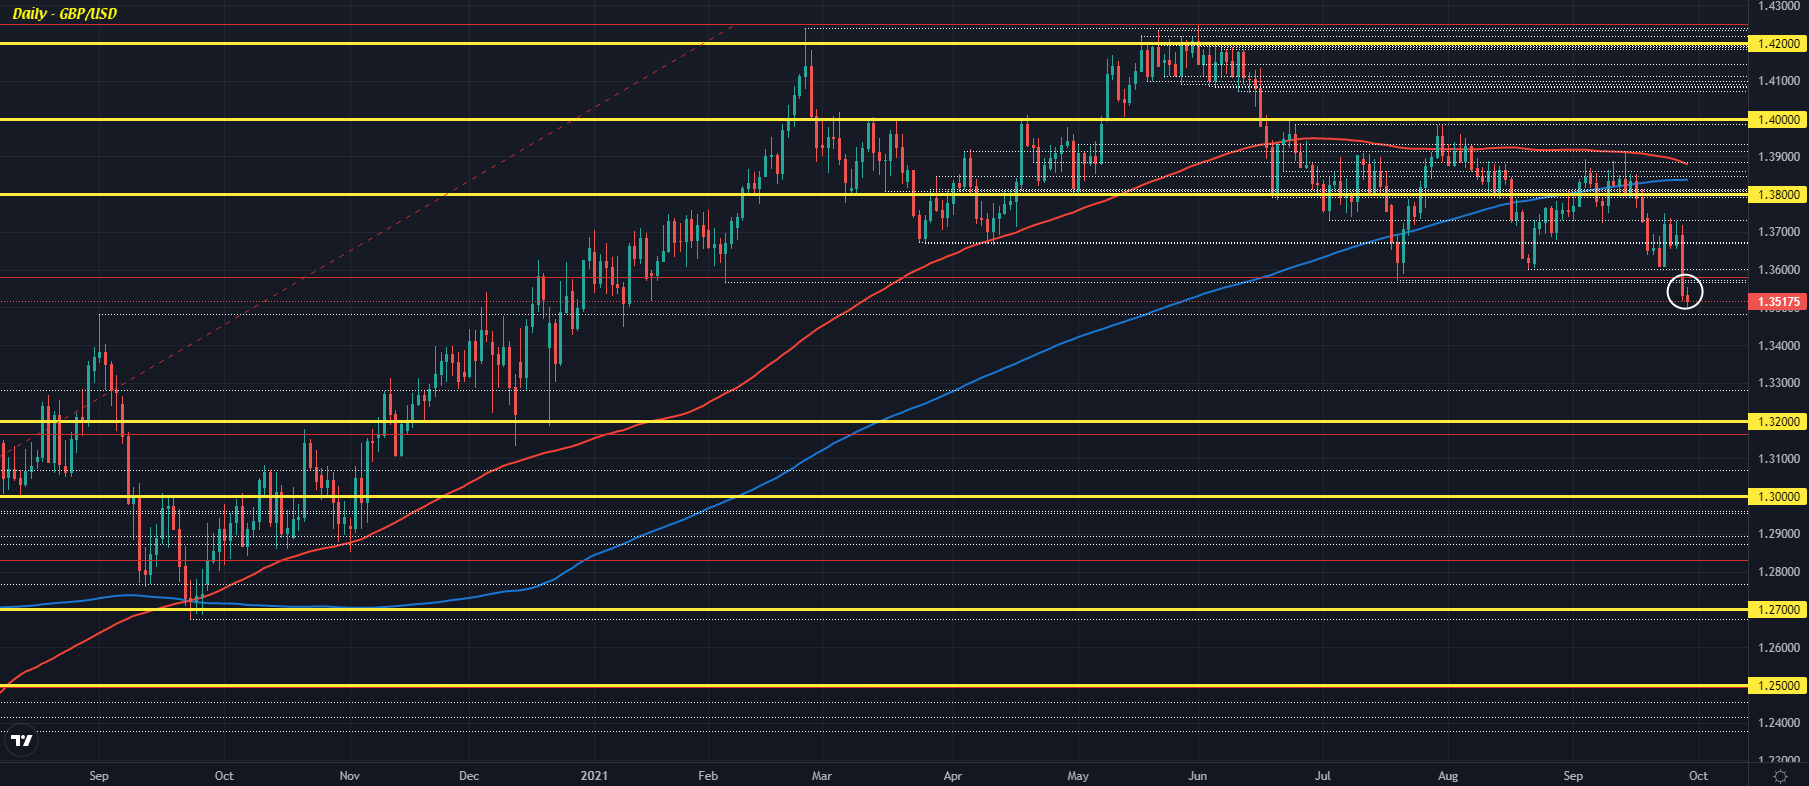 Cable dragged to fresh lows since January as downside momentum builds further